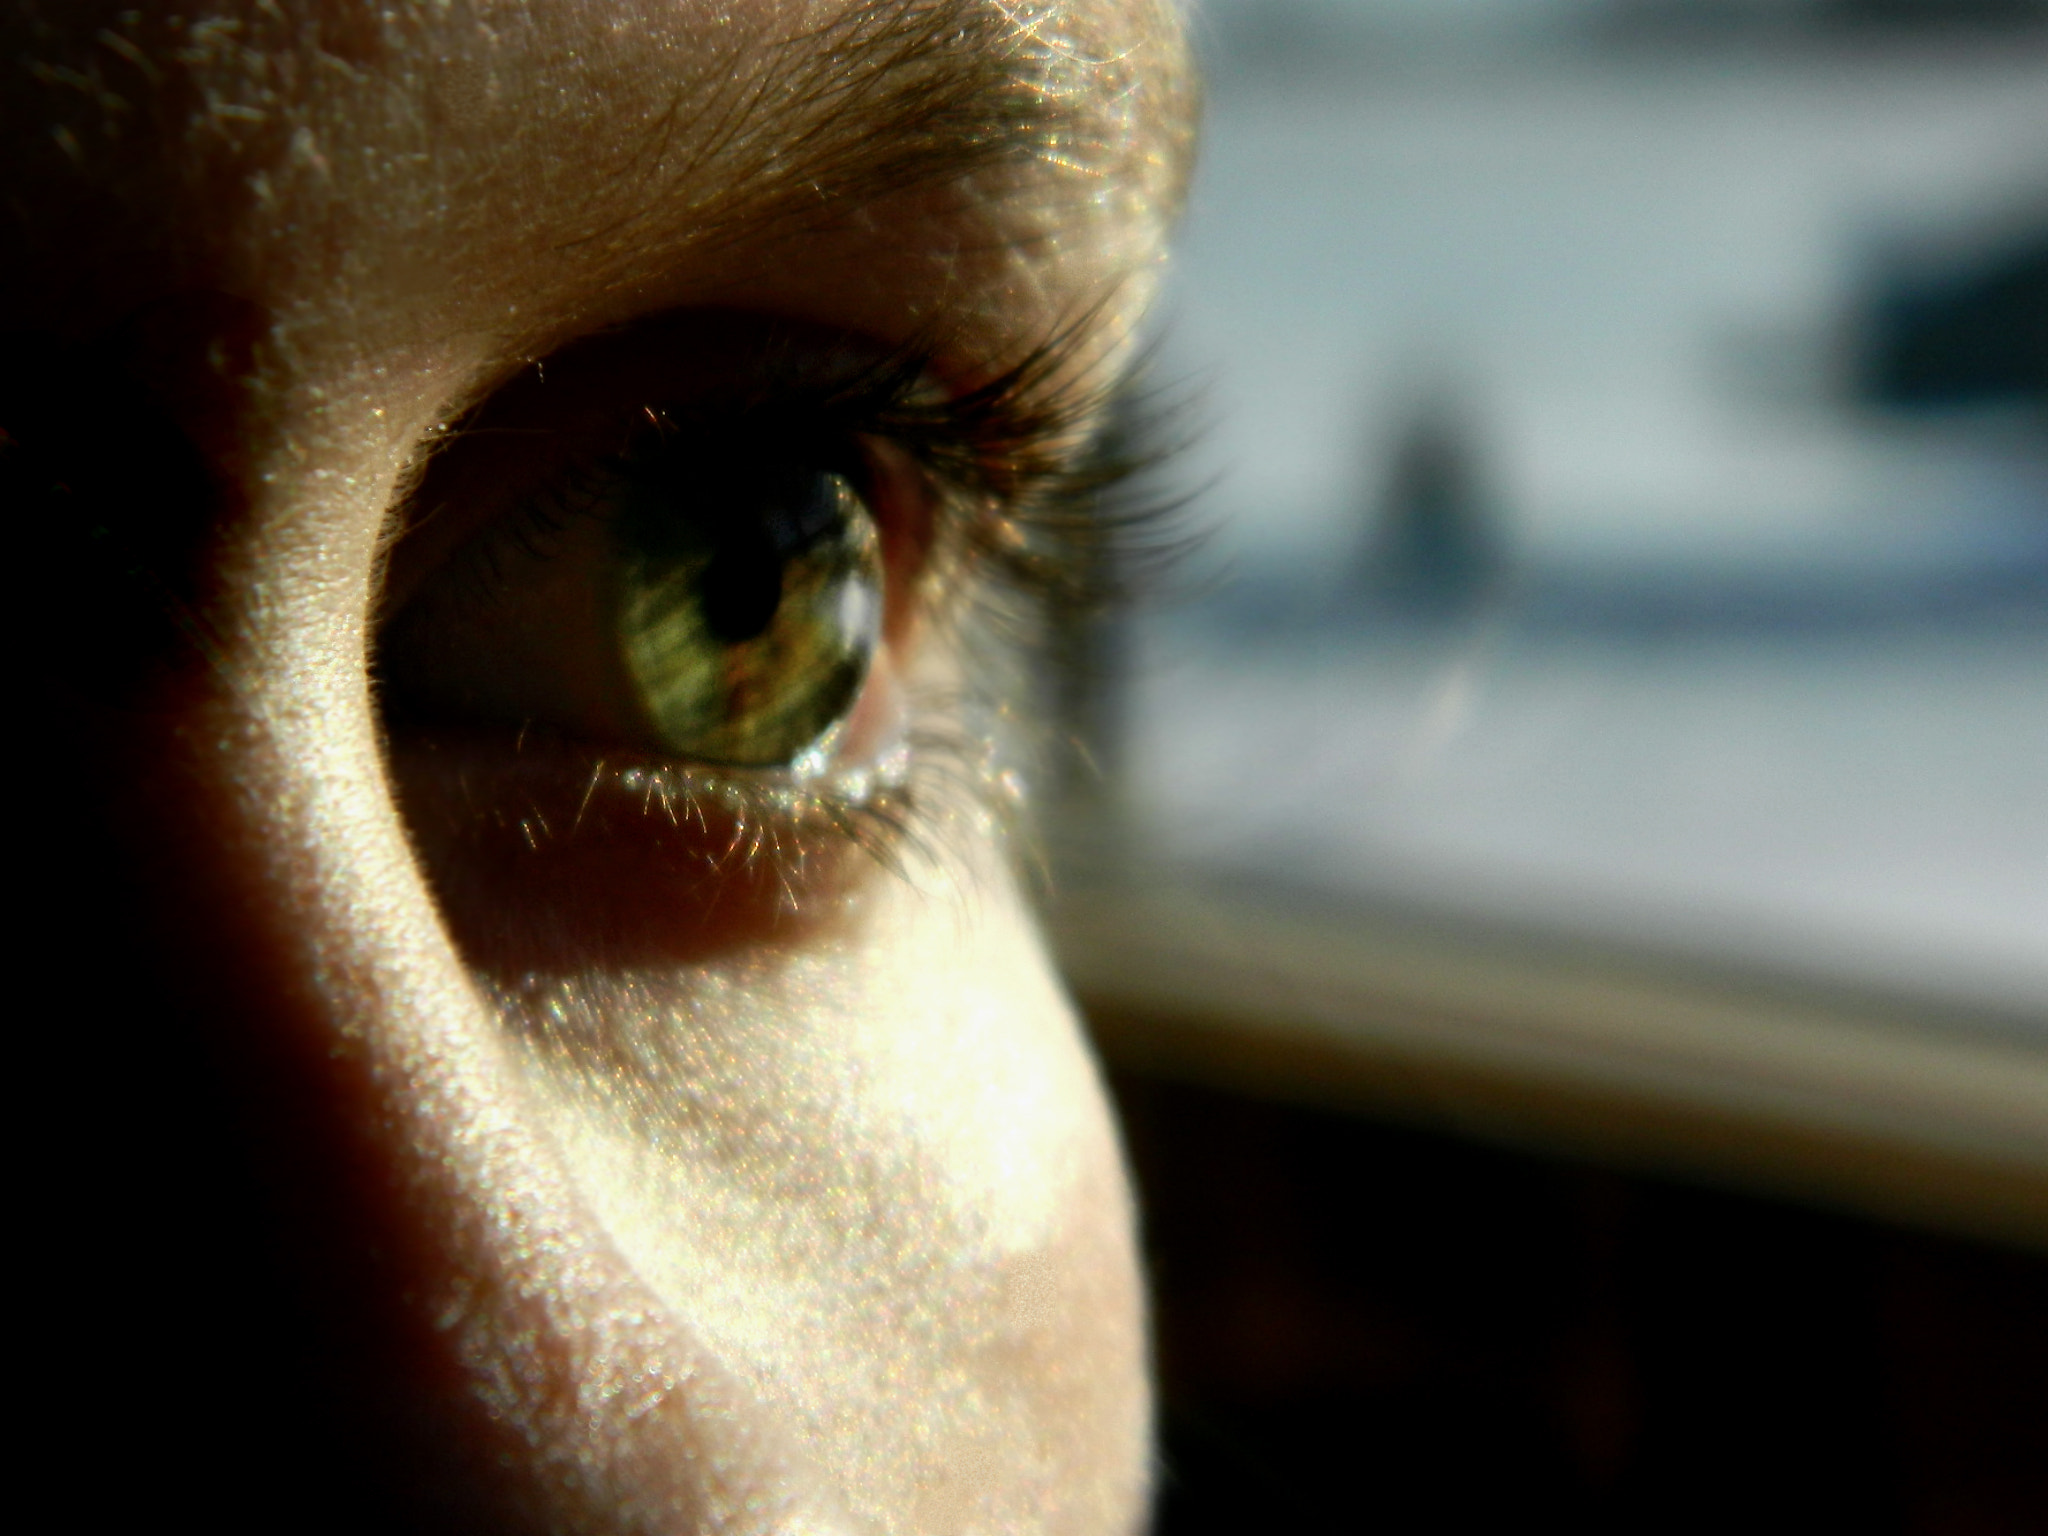 Photograph My Sister's Eye by Mariah Deschler on 500px